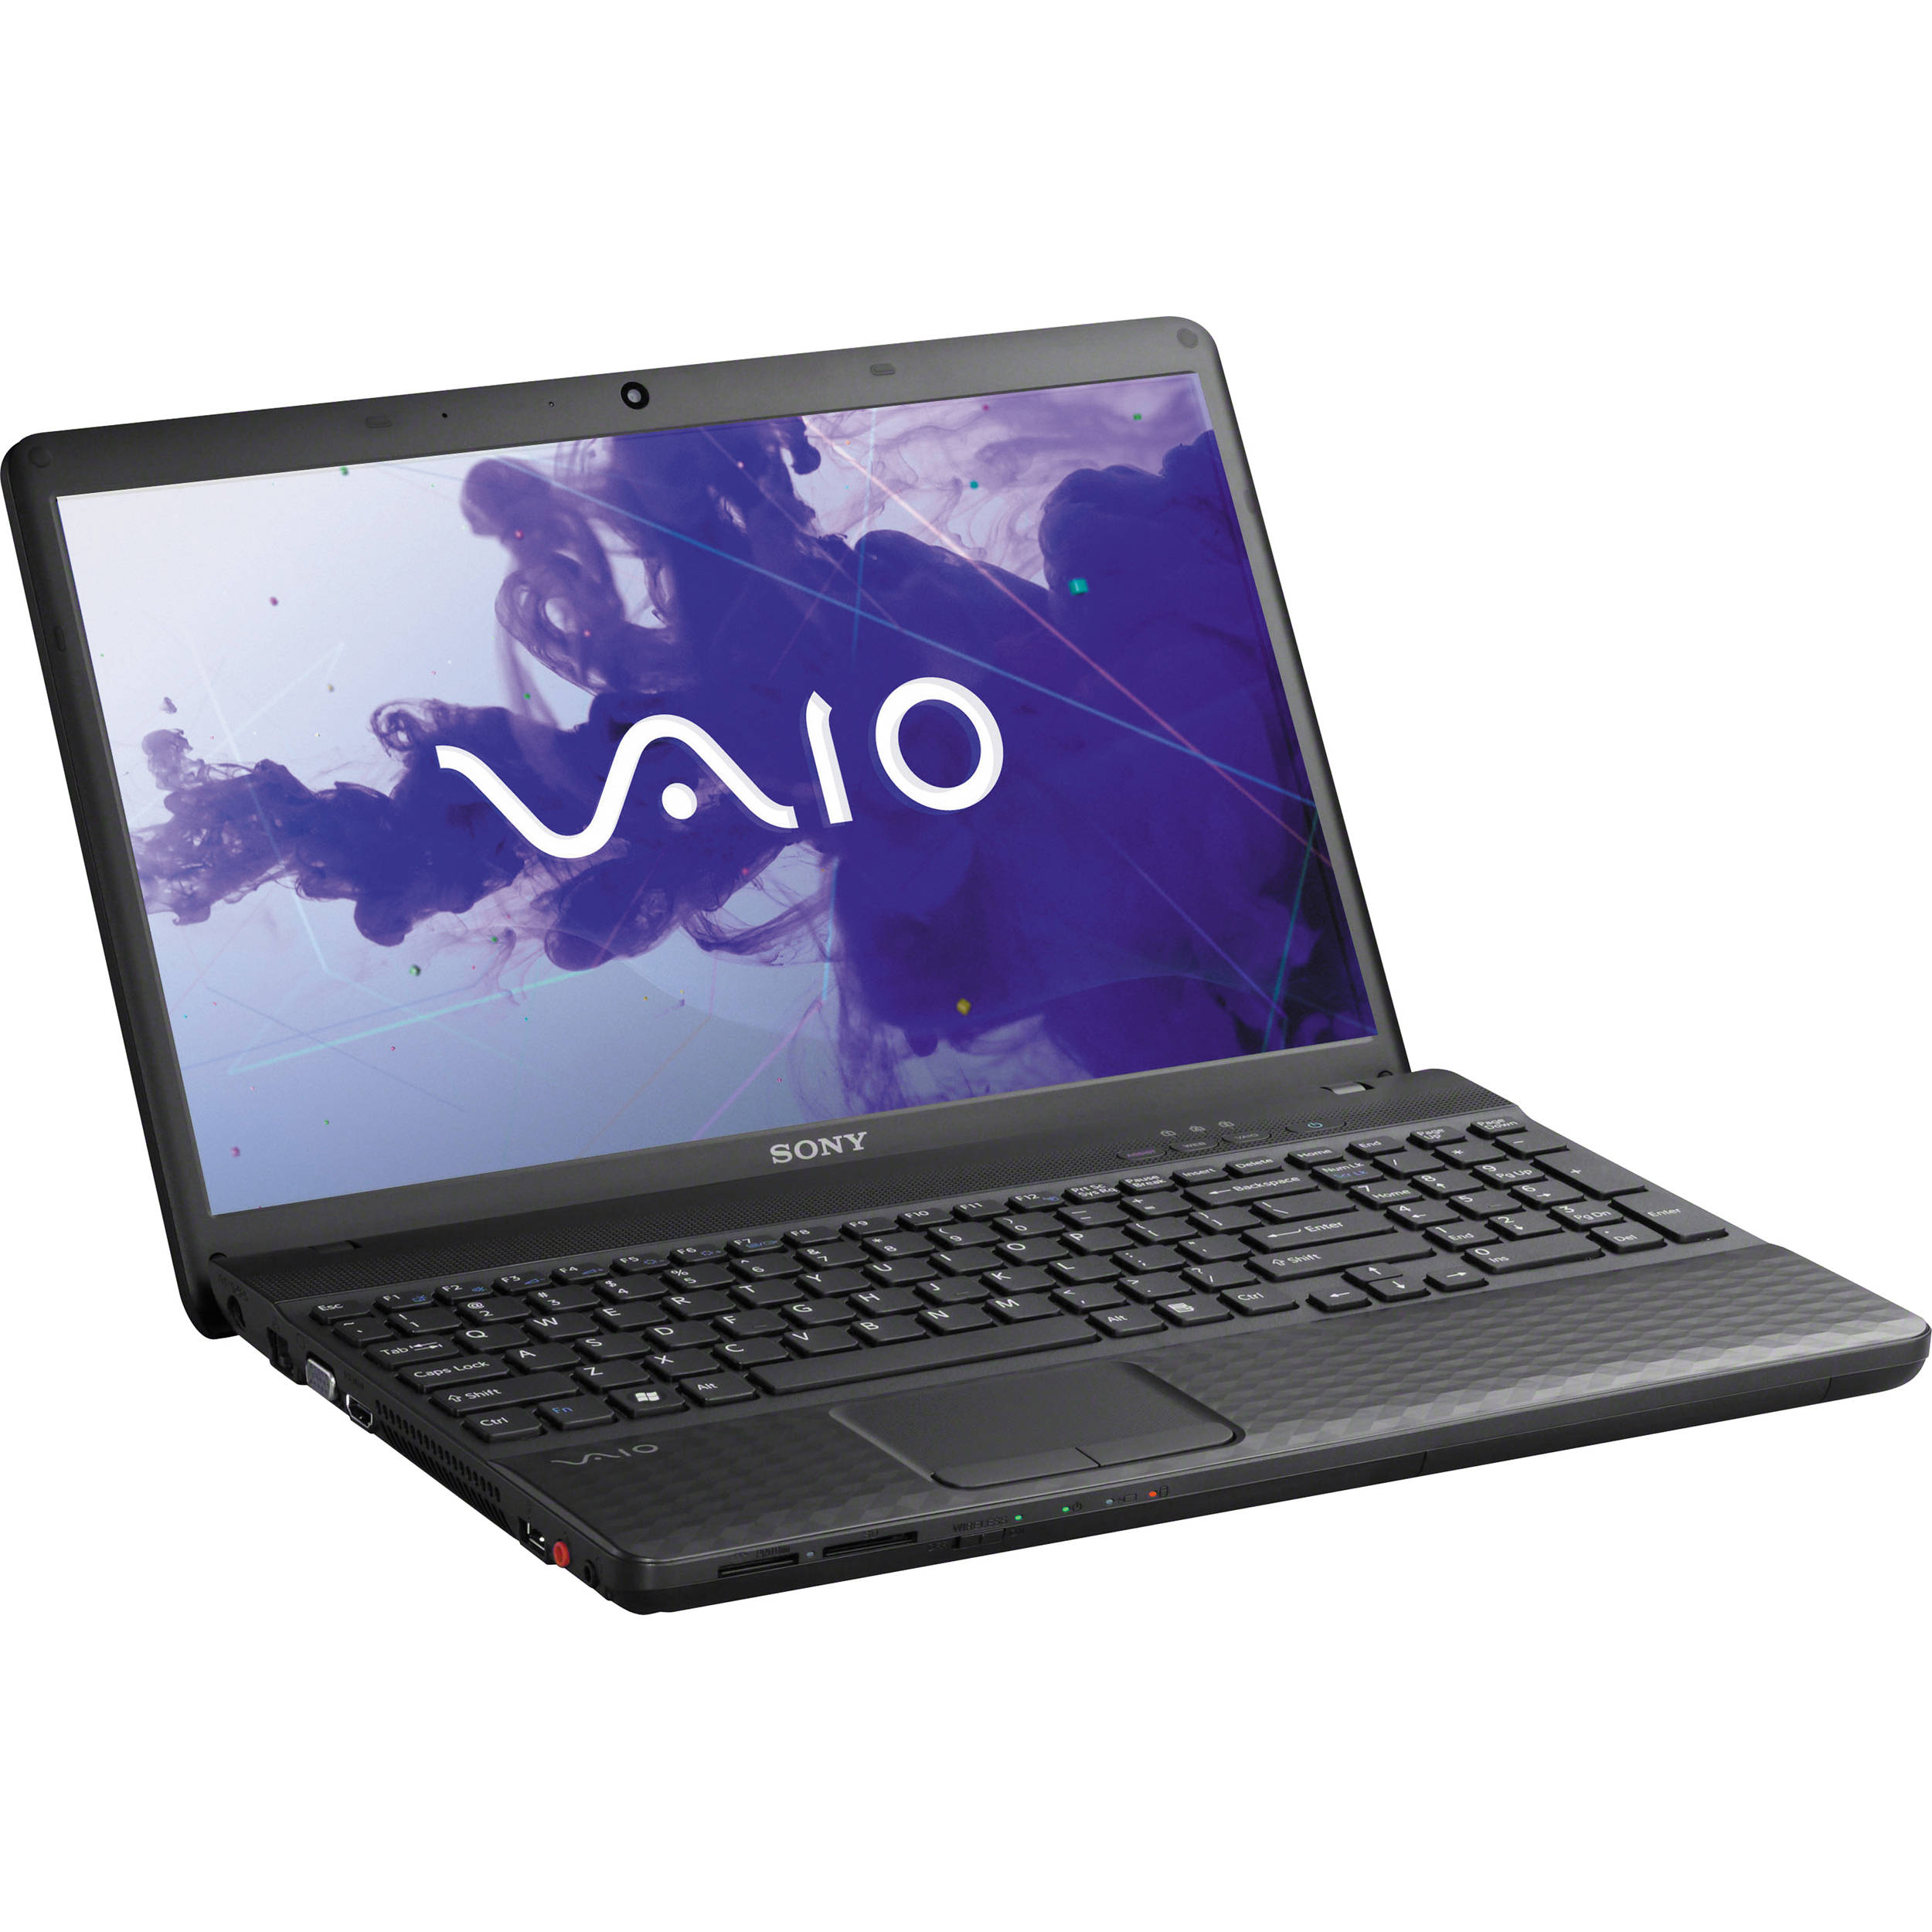 Sony Vaio VPCEH24FX/B Shared Library X64 Driver Download